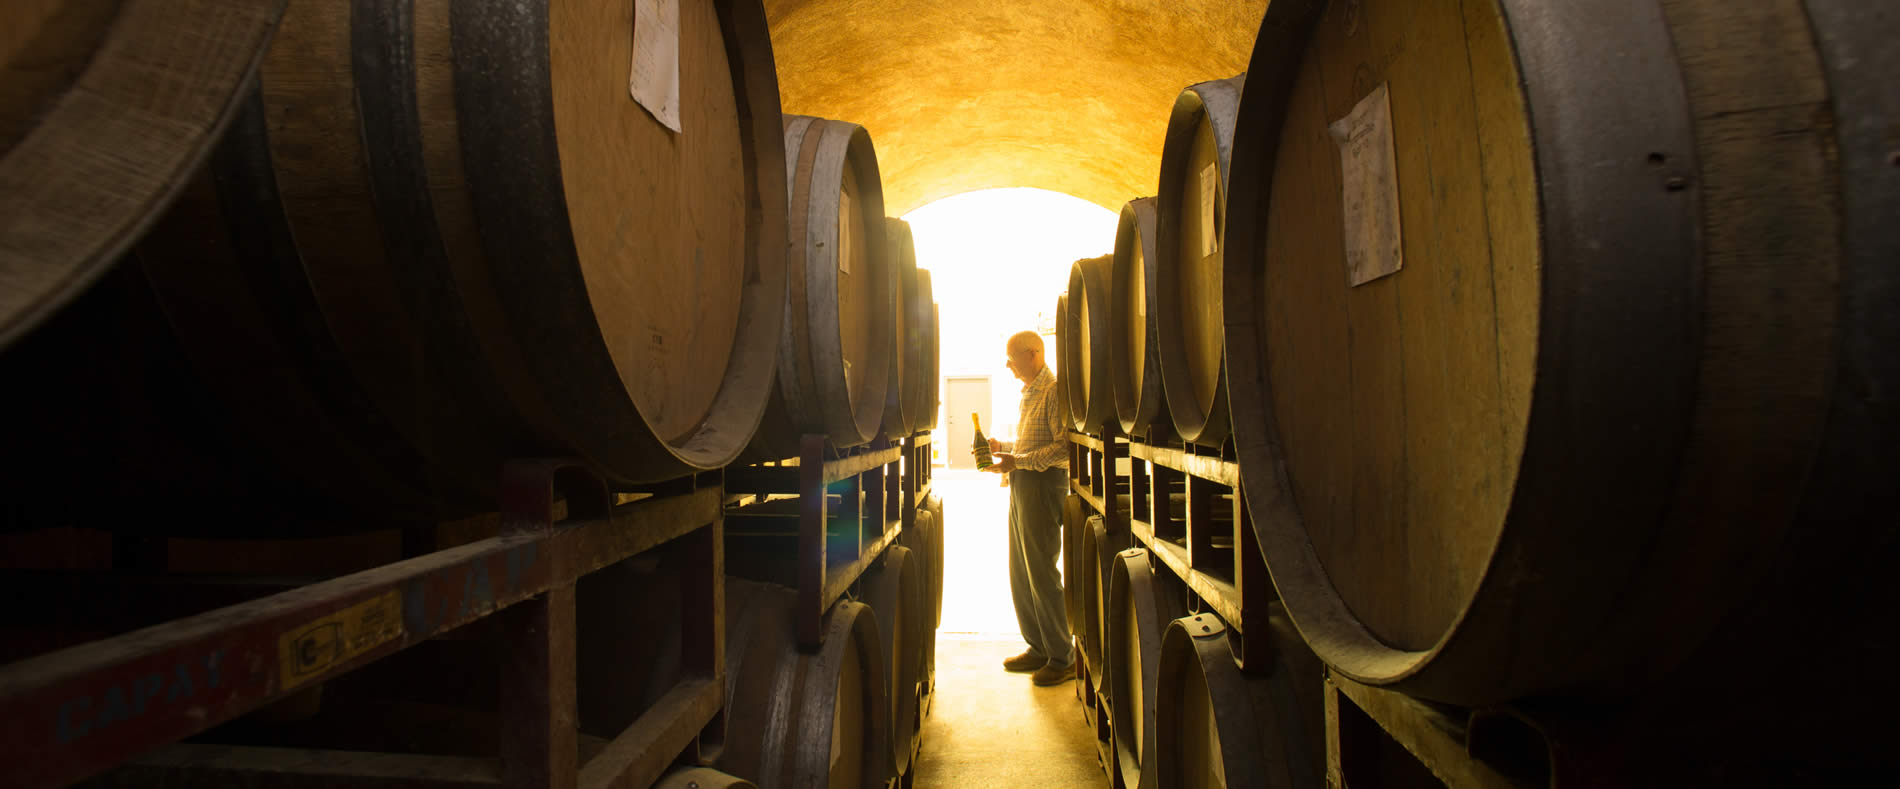 sutter creek wine tasting rooms & amador wine country wineries and tours